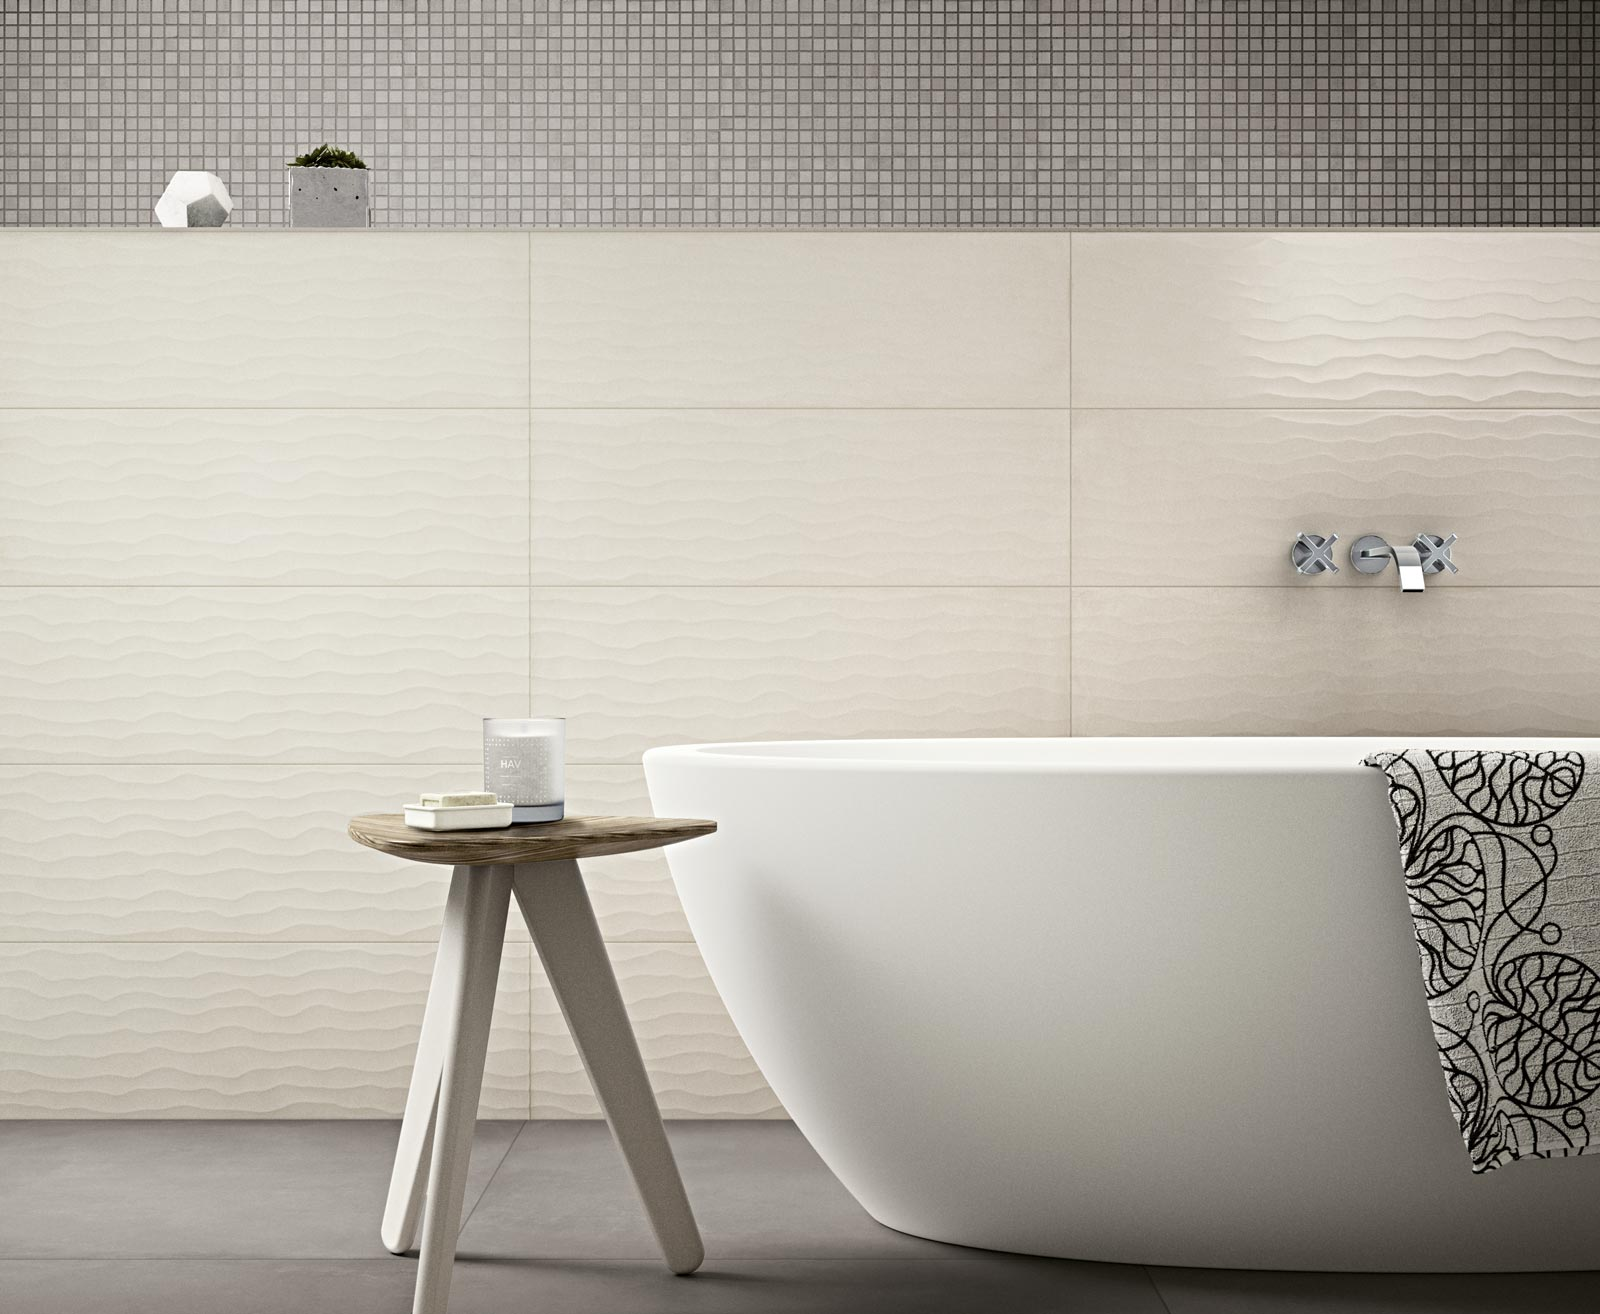 Covering tiles in bathroom - Rewind Wall Collection Terracotta And Concrete Effect